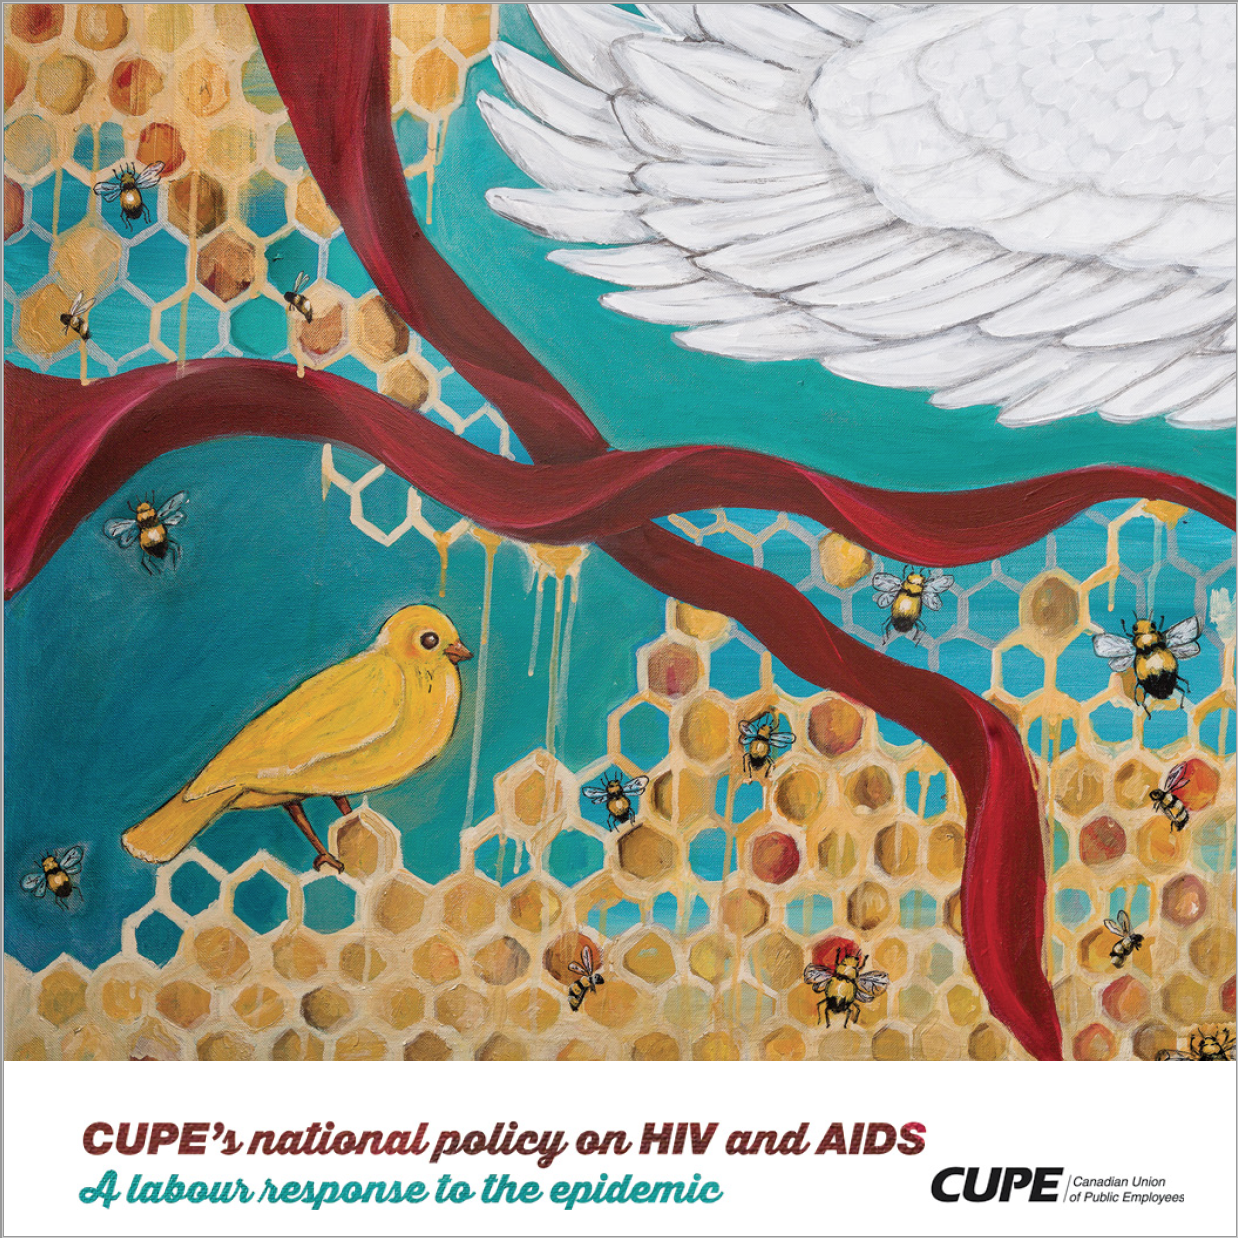 CUPE's National Policy on HIV and AIDS